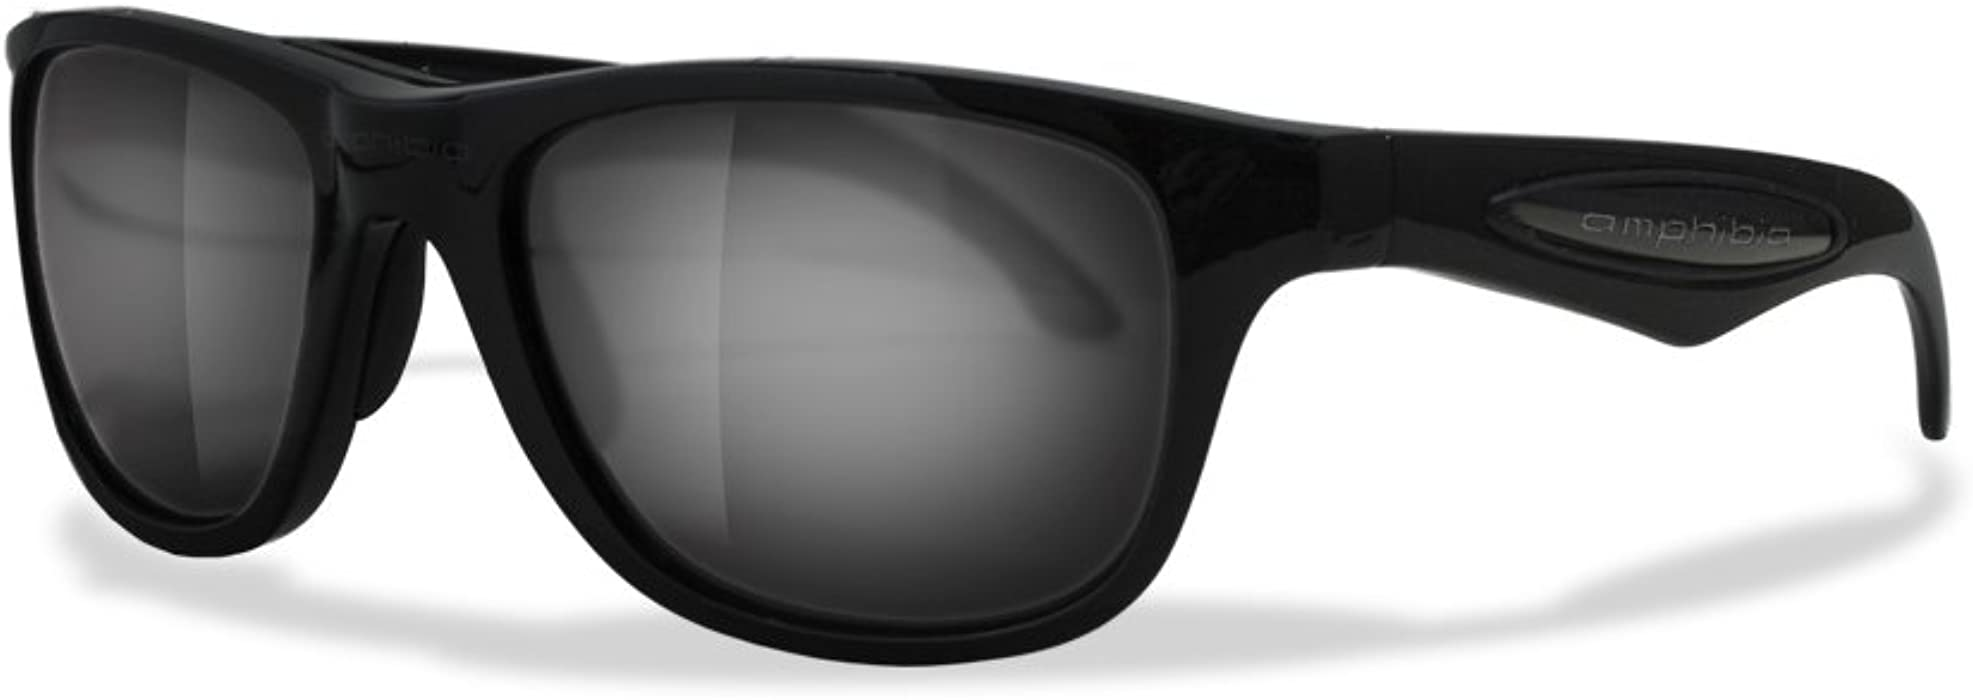 Amazon.com: Amphibia Wave Floating Sunglasses: Clothing